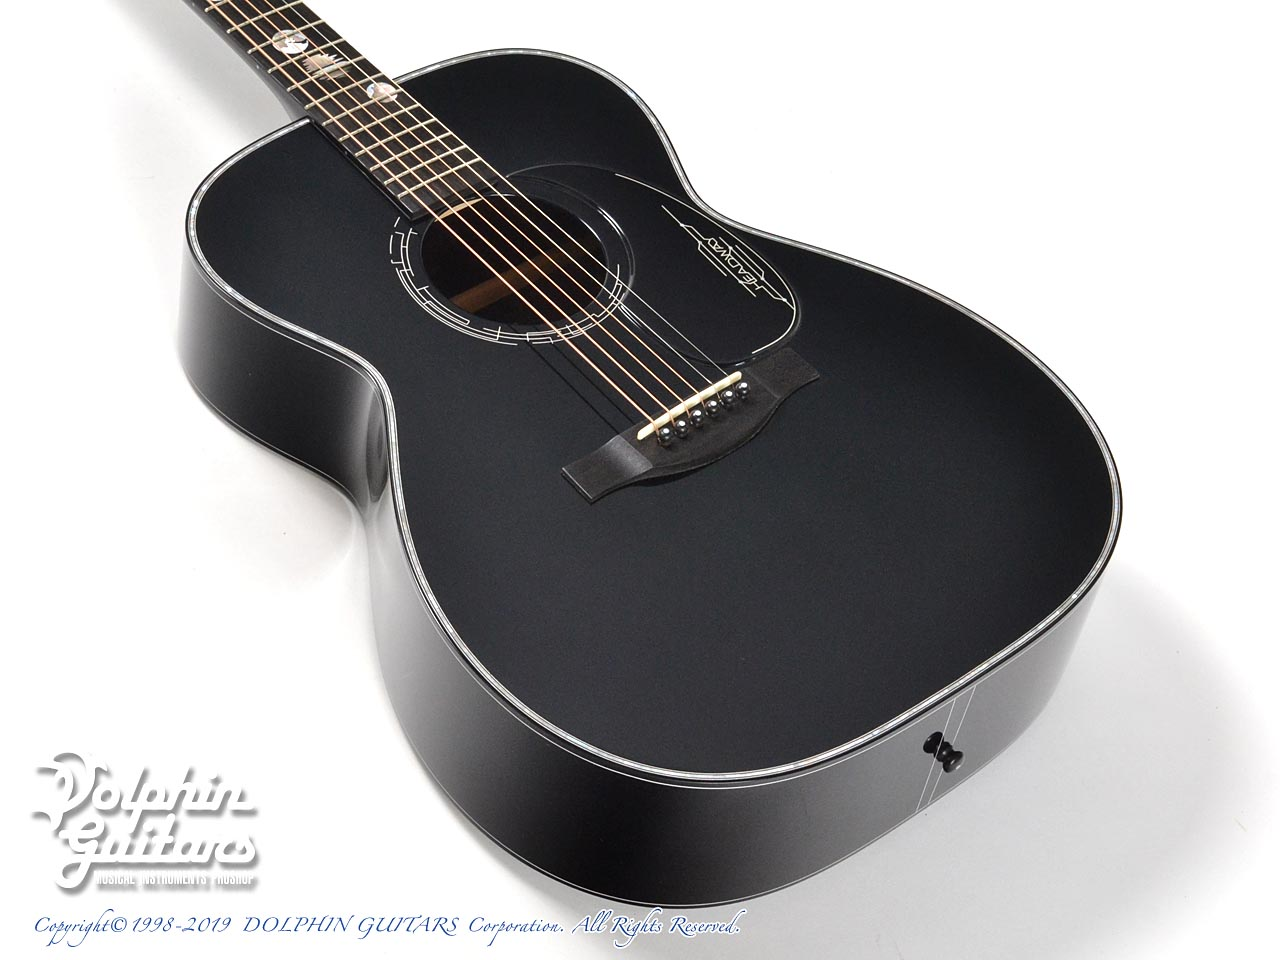 HEADWAY: HF-JET BLACK DX with Custom Ogawa Inlay (1)